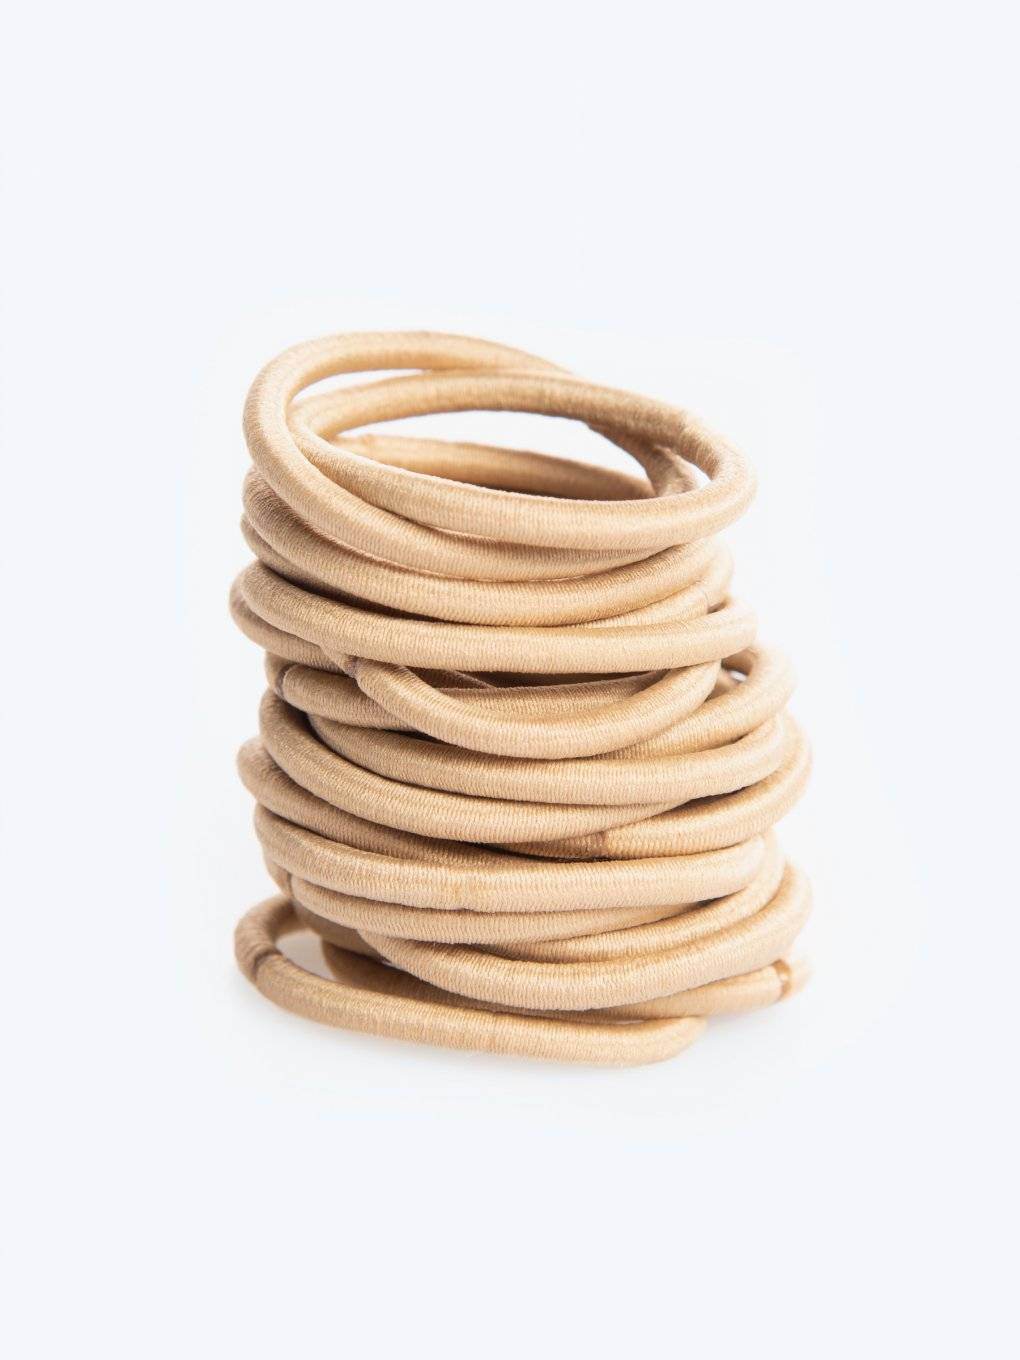 24-pack basic rubber bands set